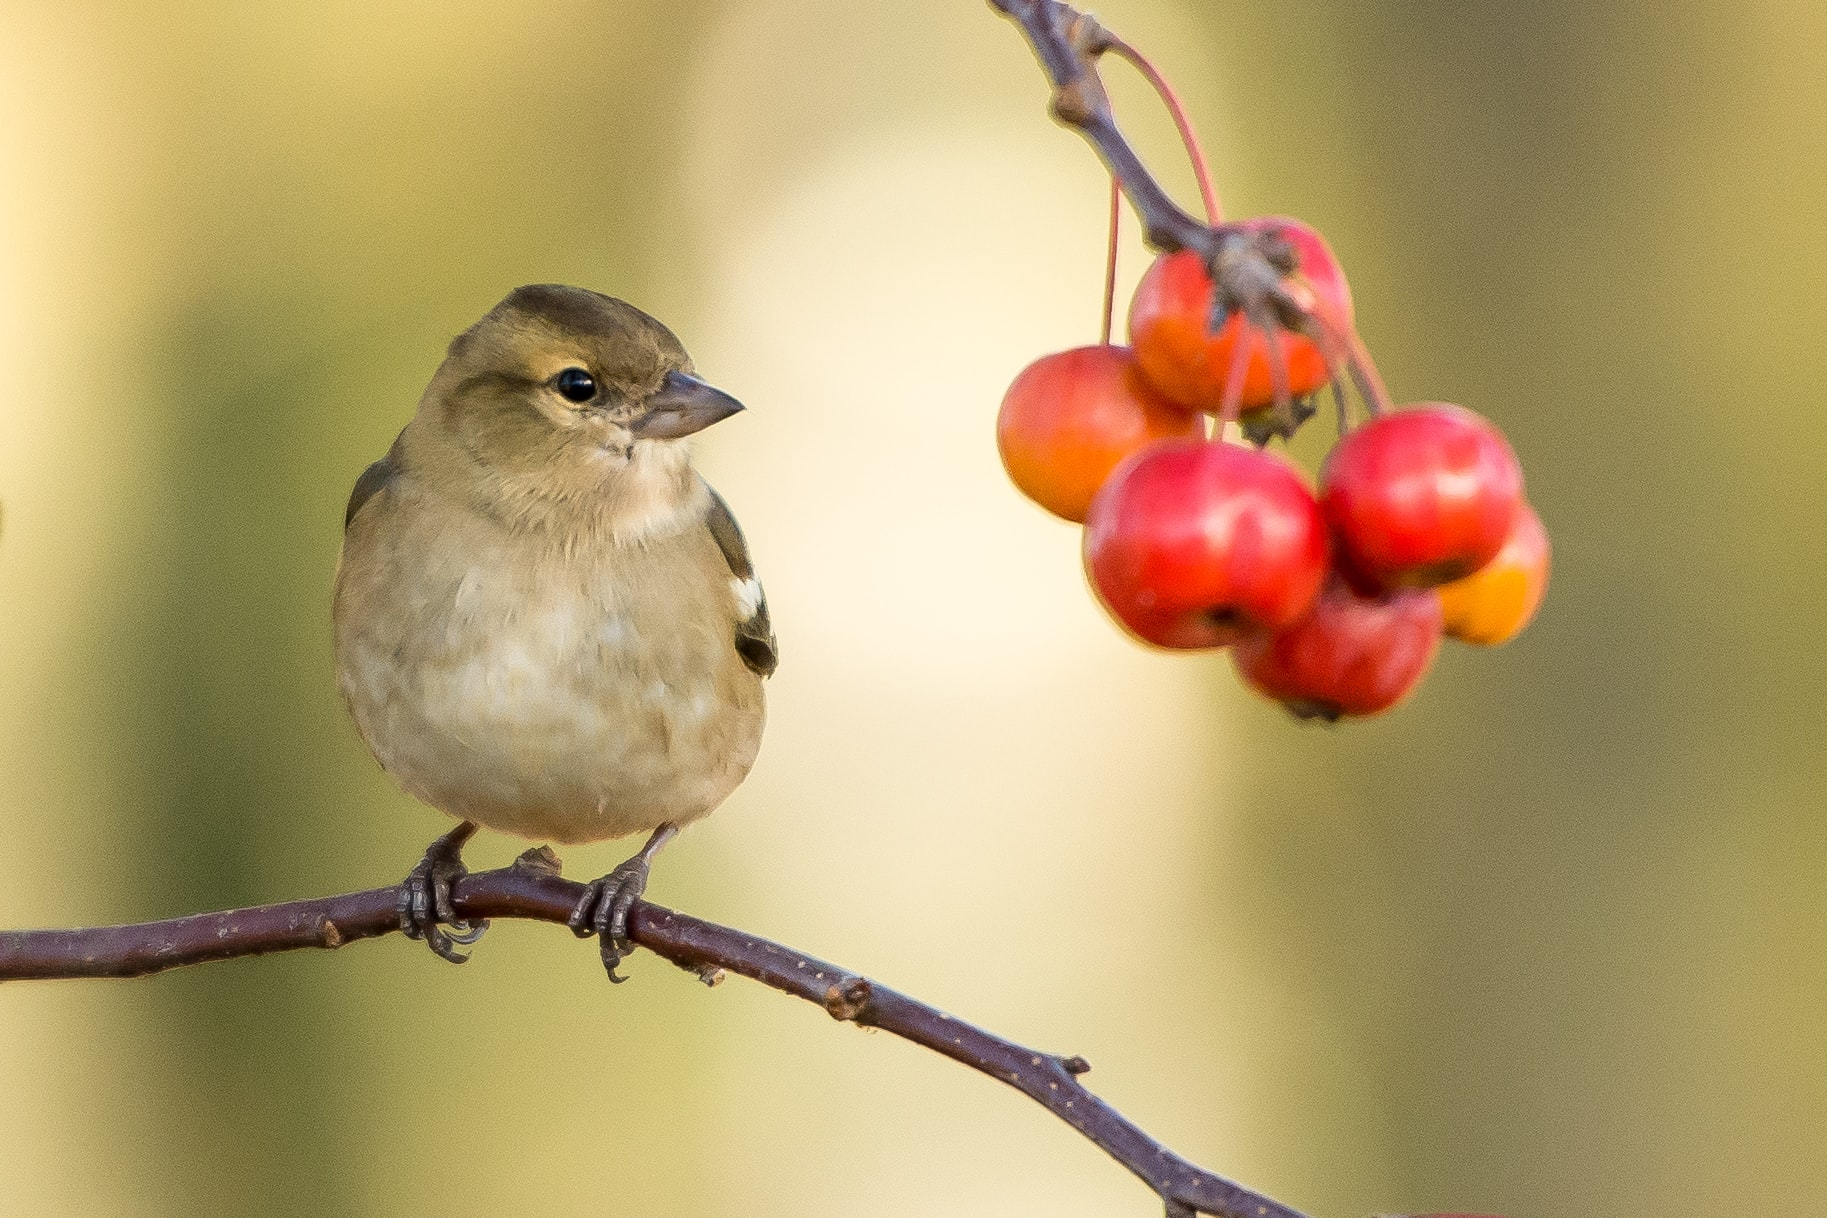 brown sparrow perched near red fruits